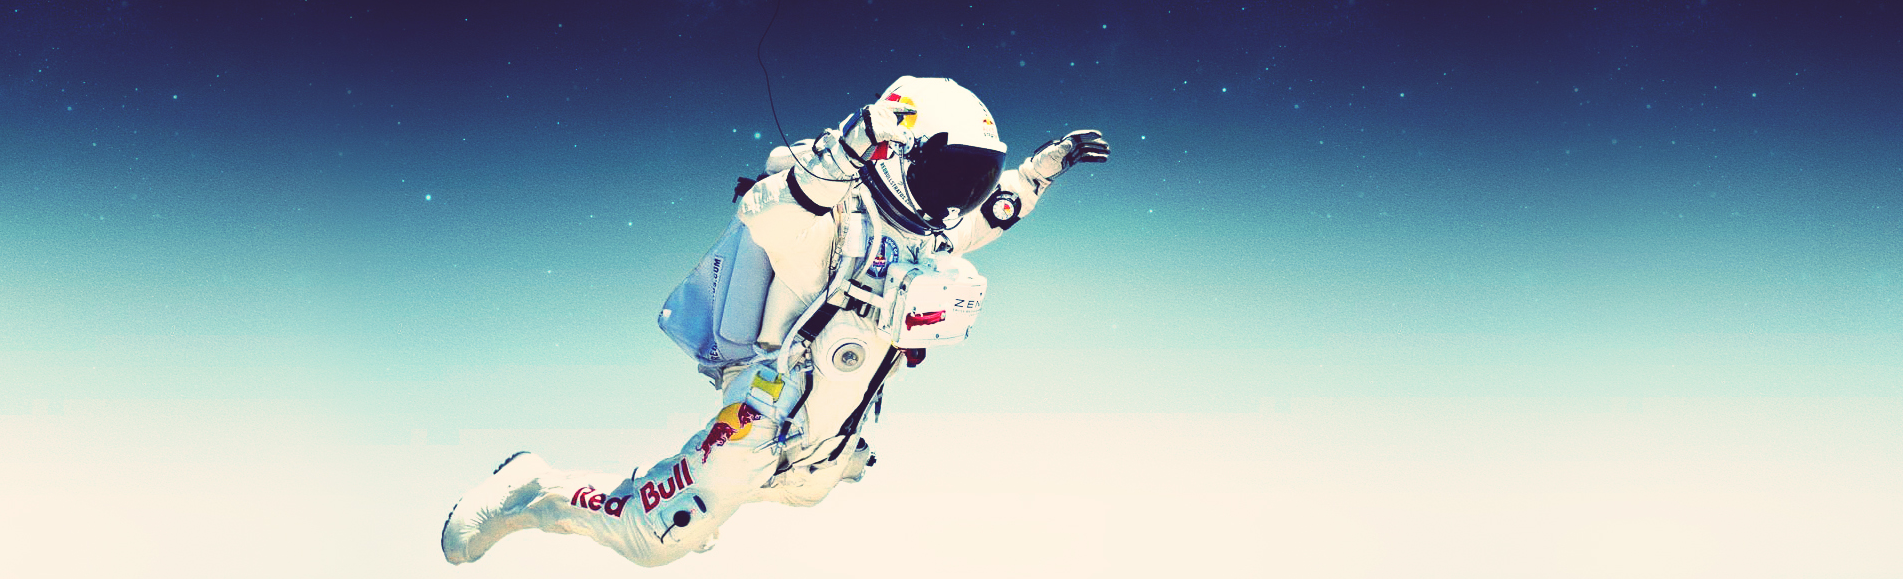 MD Blog MD: Red Bull le da alas a su marketing Casos Marketing Online Redes Sociales  salto red bull stratos red bull record mateschitz marketing online marketing digital argentina Marketing logros felix baumgartner éxito estratosfera estrategia barrera de sonido